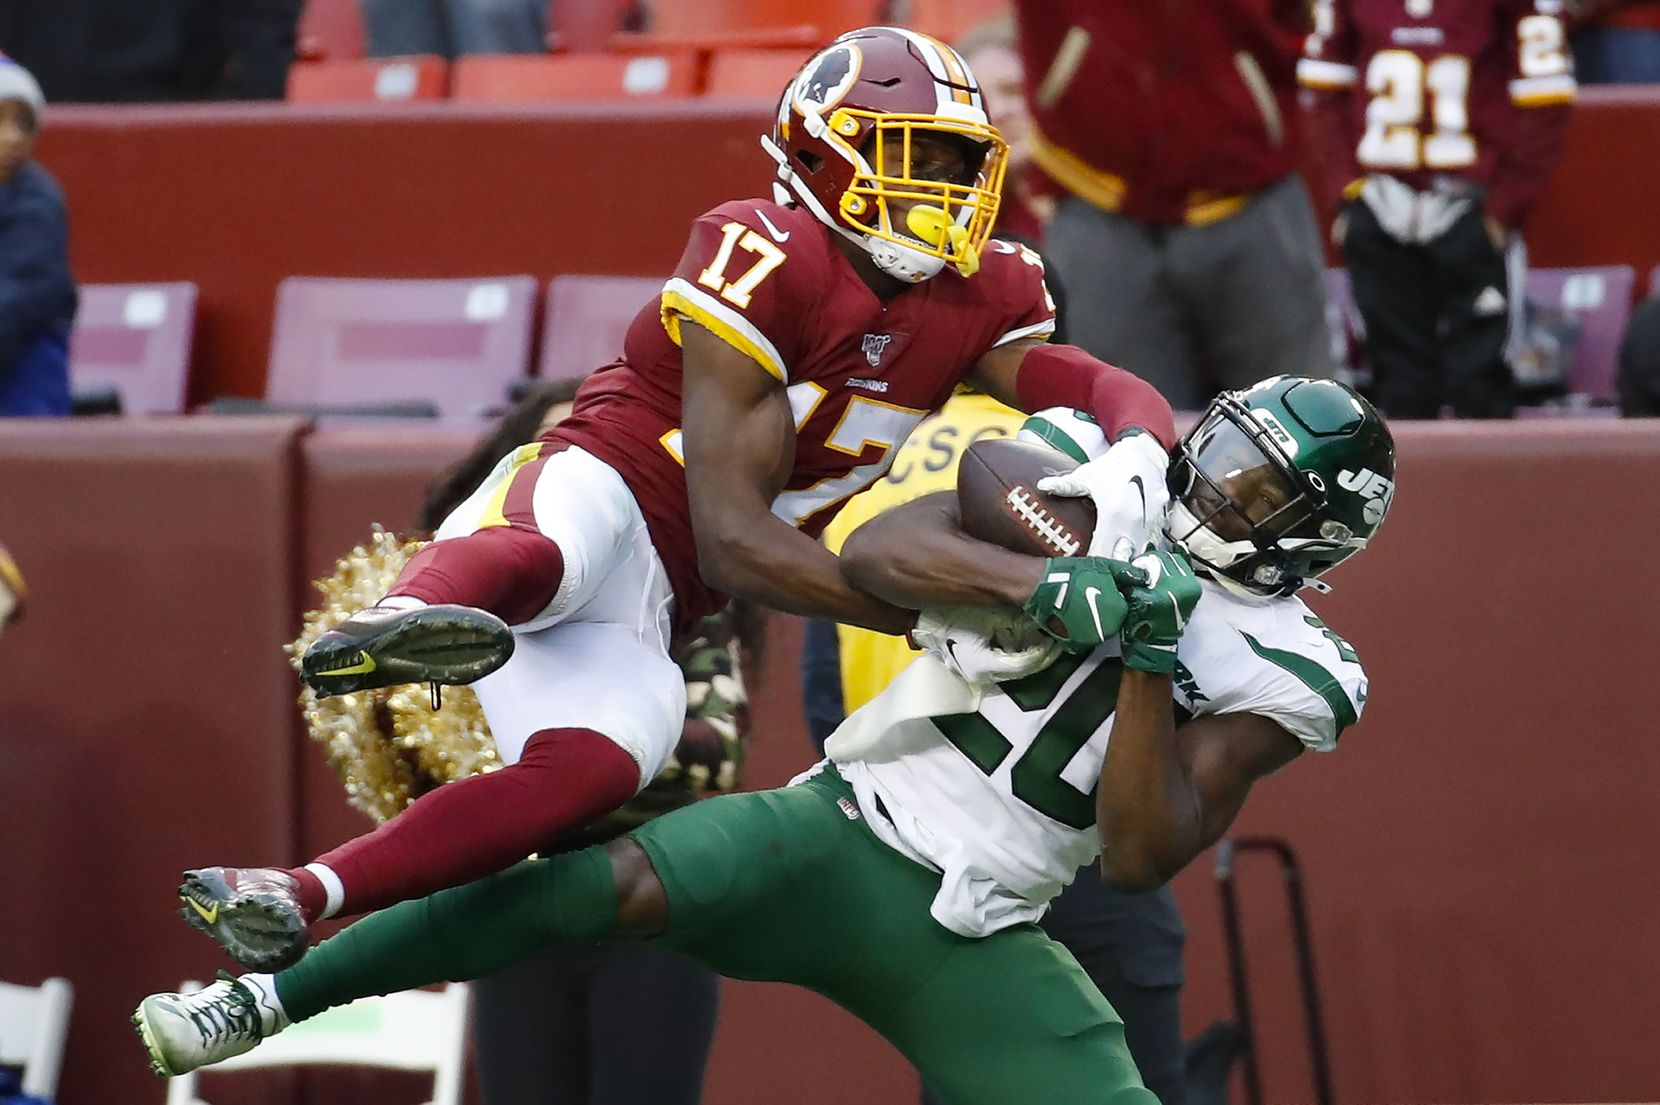 FILE - Redskins wide receiver Terry McLaurin (17) beats out Jets free safety Marcus Maye (20) to make the catch during the second half of a game on Sunday, Nov. 17, 2019, in Landover, Md. (AP Photo/Alex Brandon)